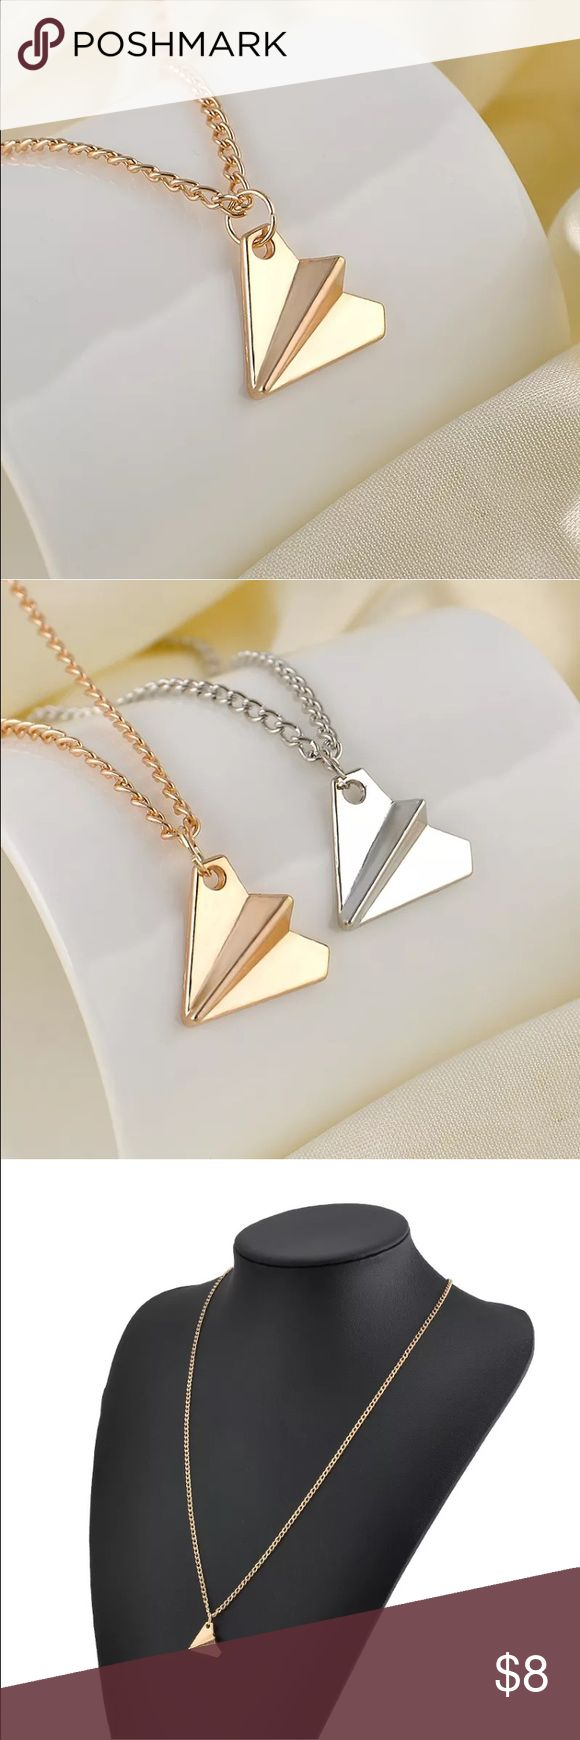 Henry styles, 1 Direction, paper plane, charm Silver tone and gold tone charm necklaces available. As seen worn by Henry styles. Great stocking stuffer! none Jewelry Necklaces